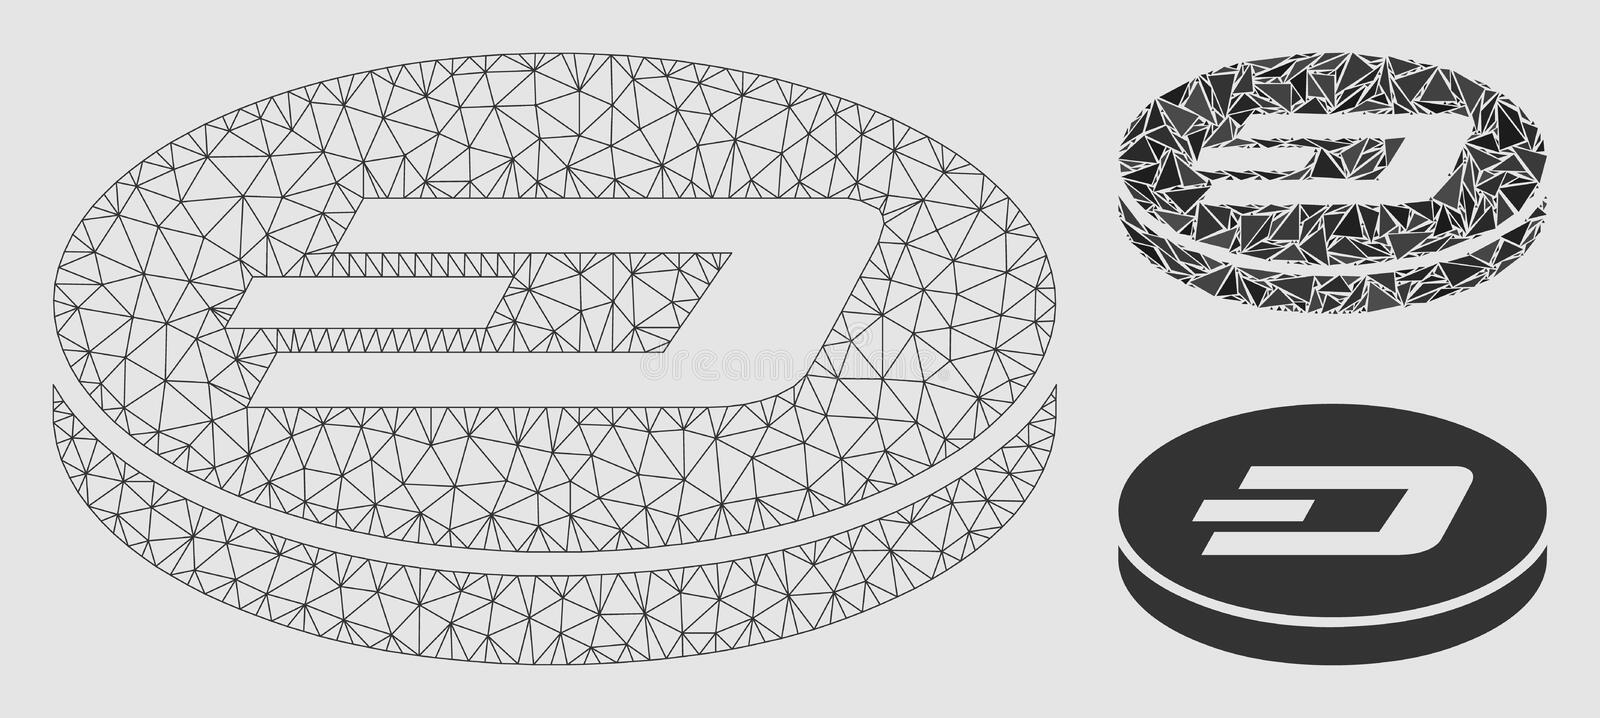 Dash Coin Vector Mesh Wire Frame Model and Triangle Mosaic Icon. Mesh Dash coin model with triangle mosaic icon. Wire carcass polygonal mesh of Dash coin. Vector vector illustration